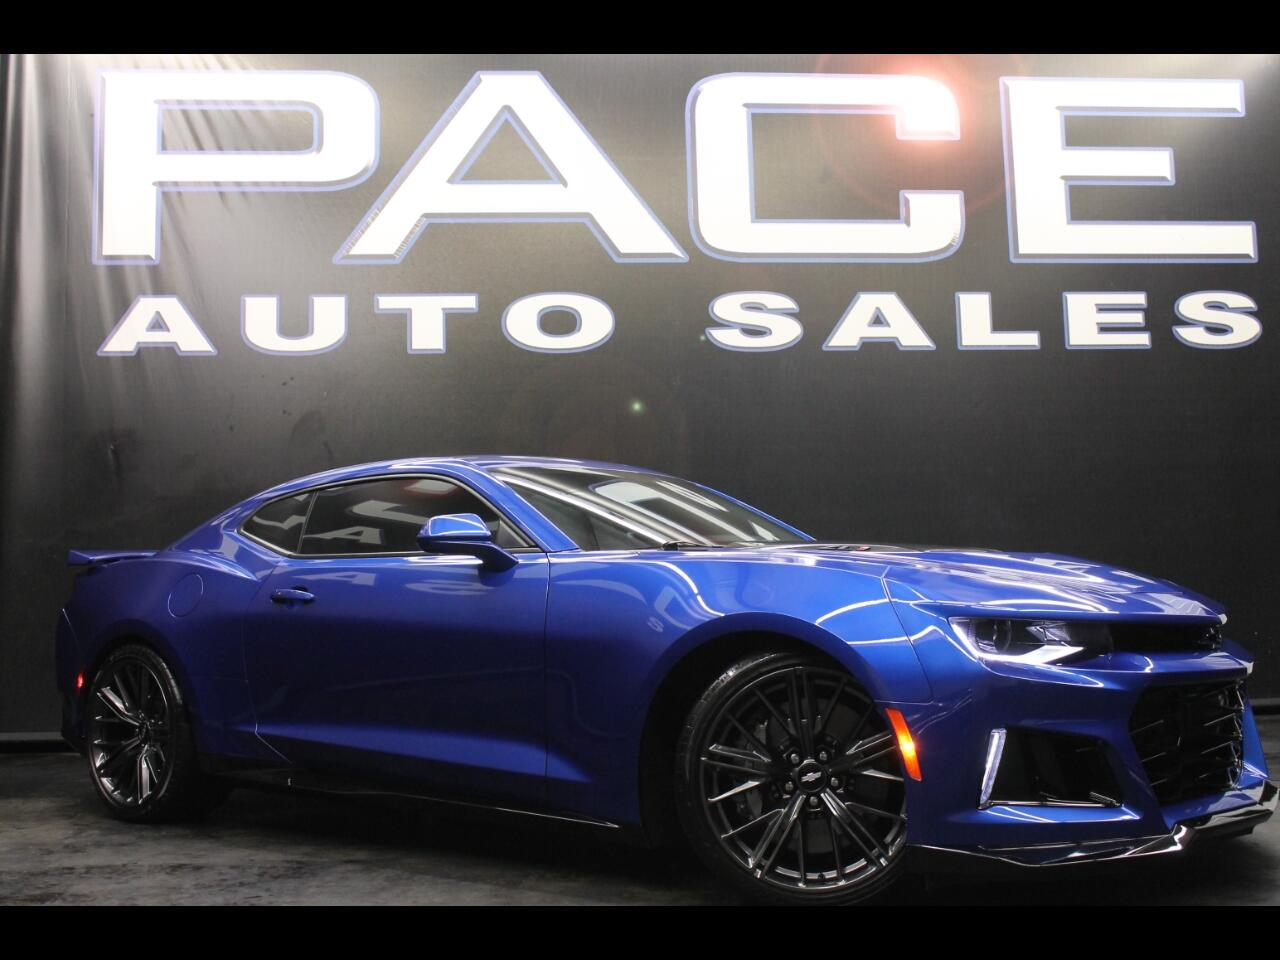 2018 Chevrolet Camaro 2dr Cpe ZL1 Supercharged